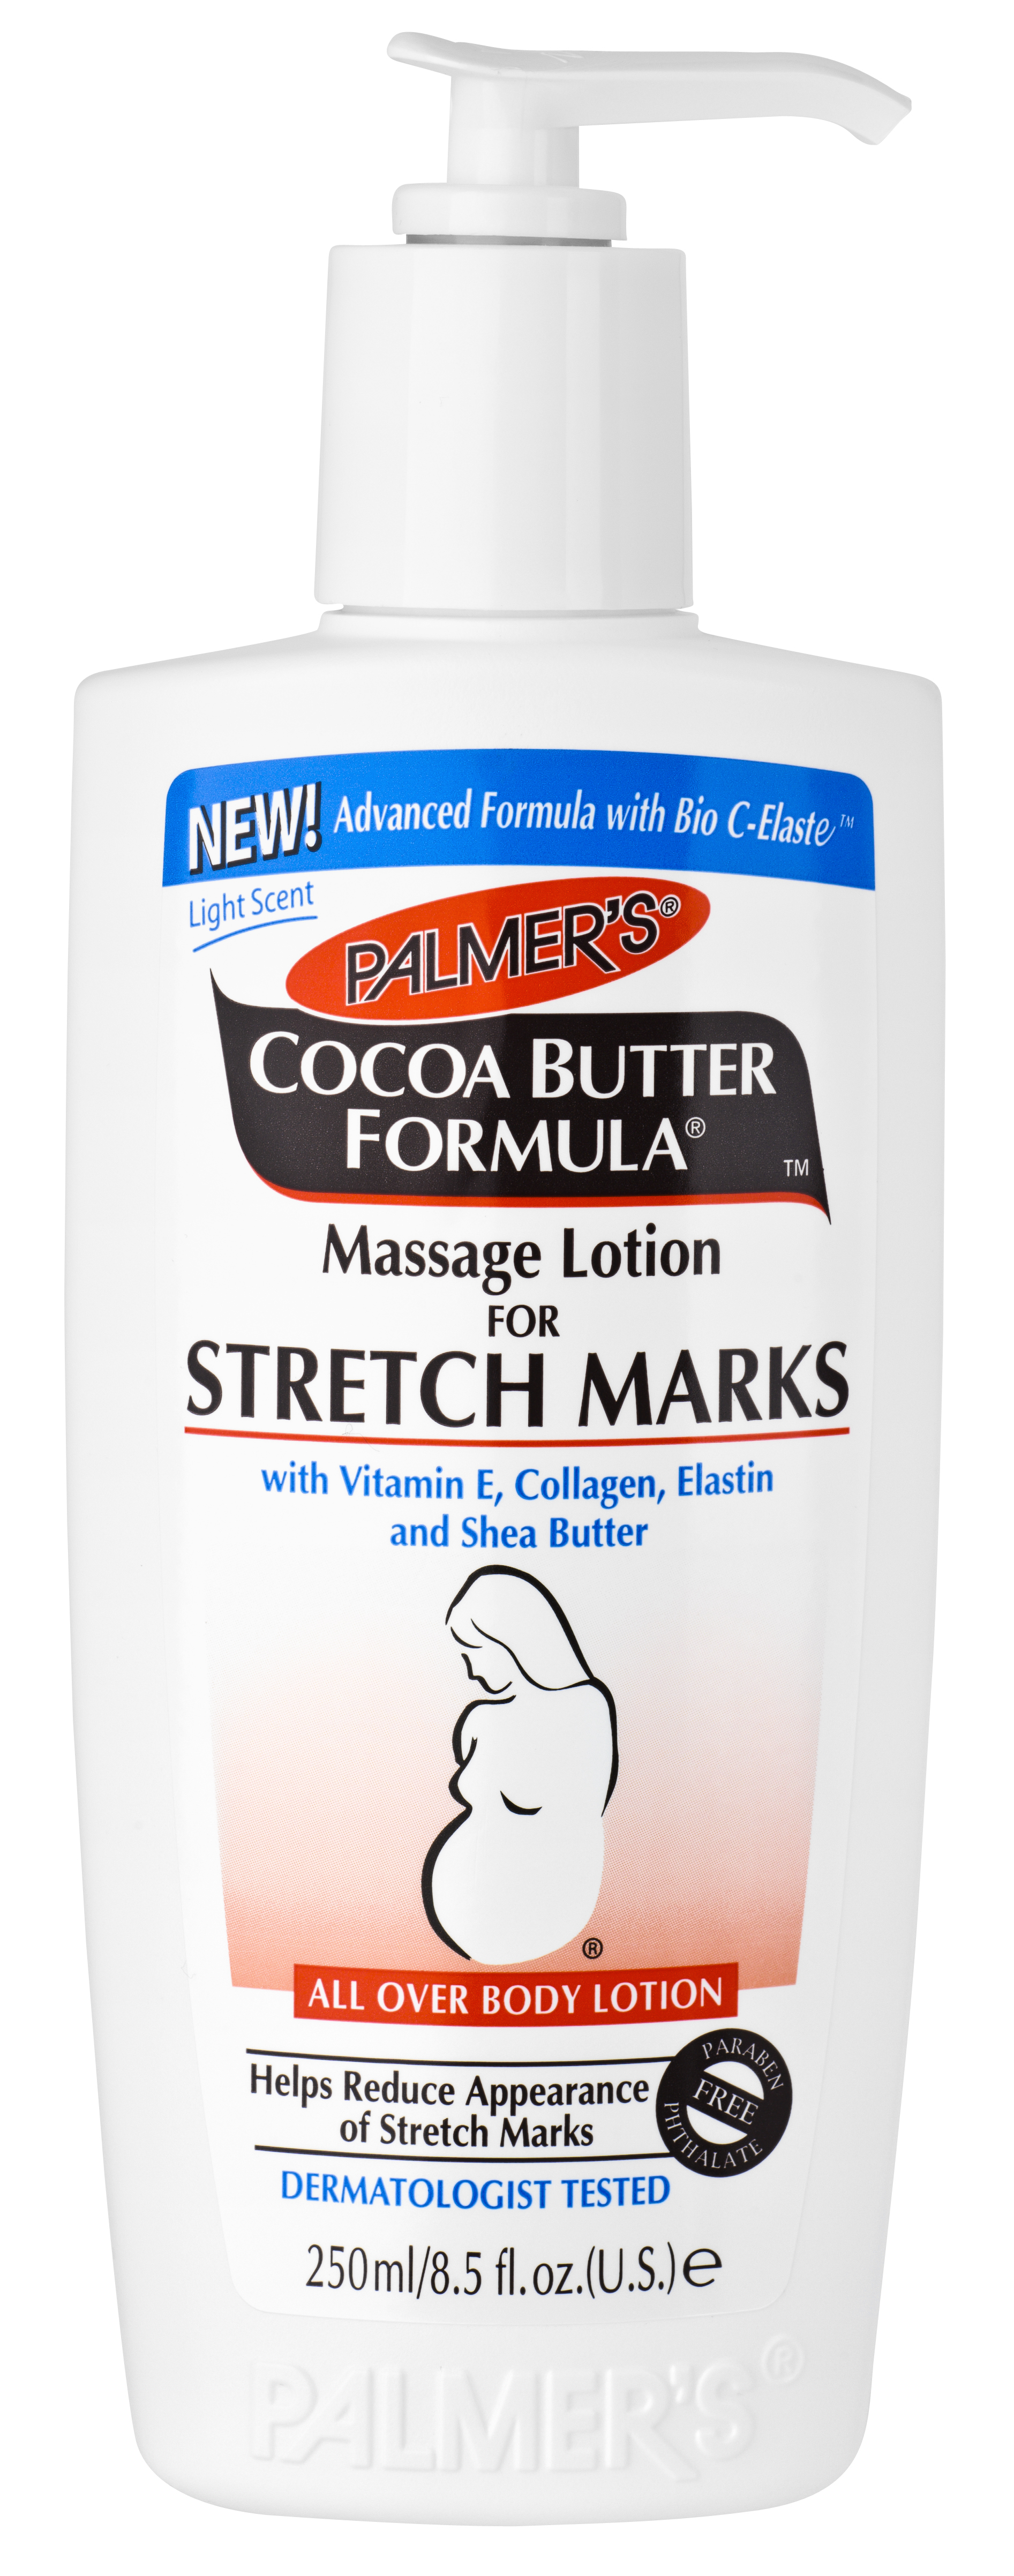 Palmers stretch mark lotion review